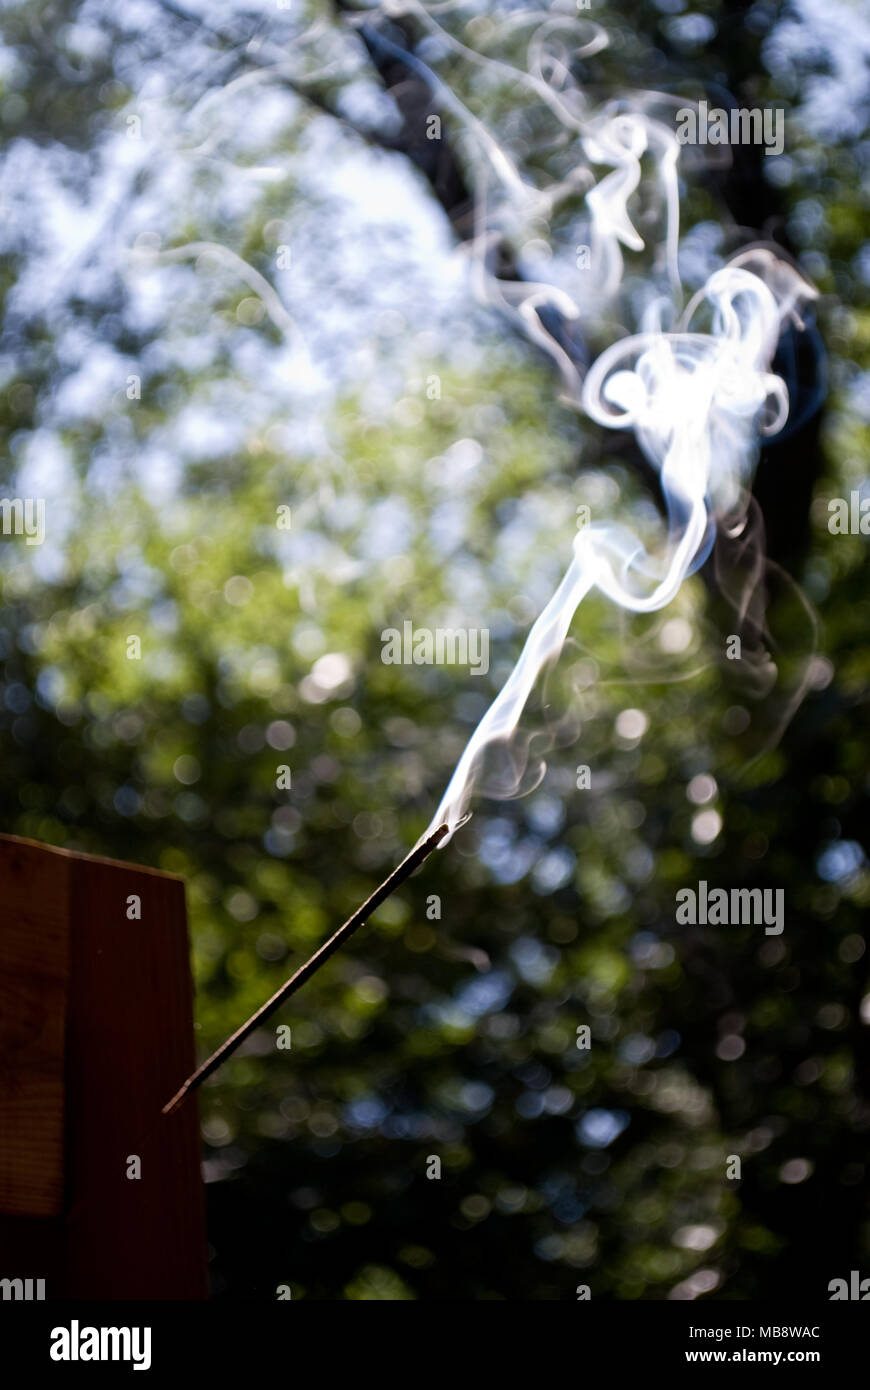 Waft of smoke rising from a stick of incense - Stock Image